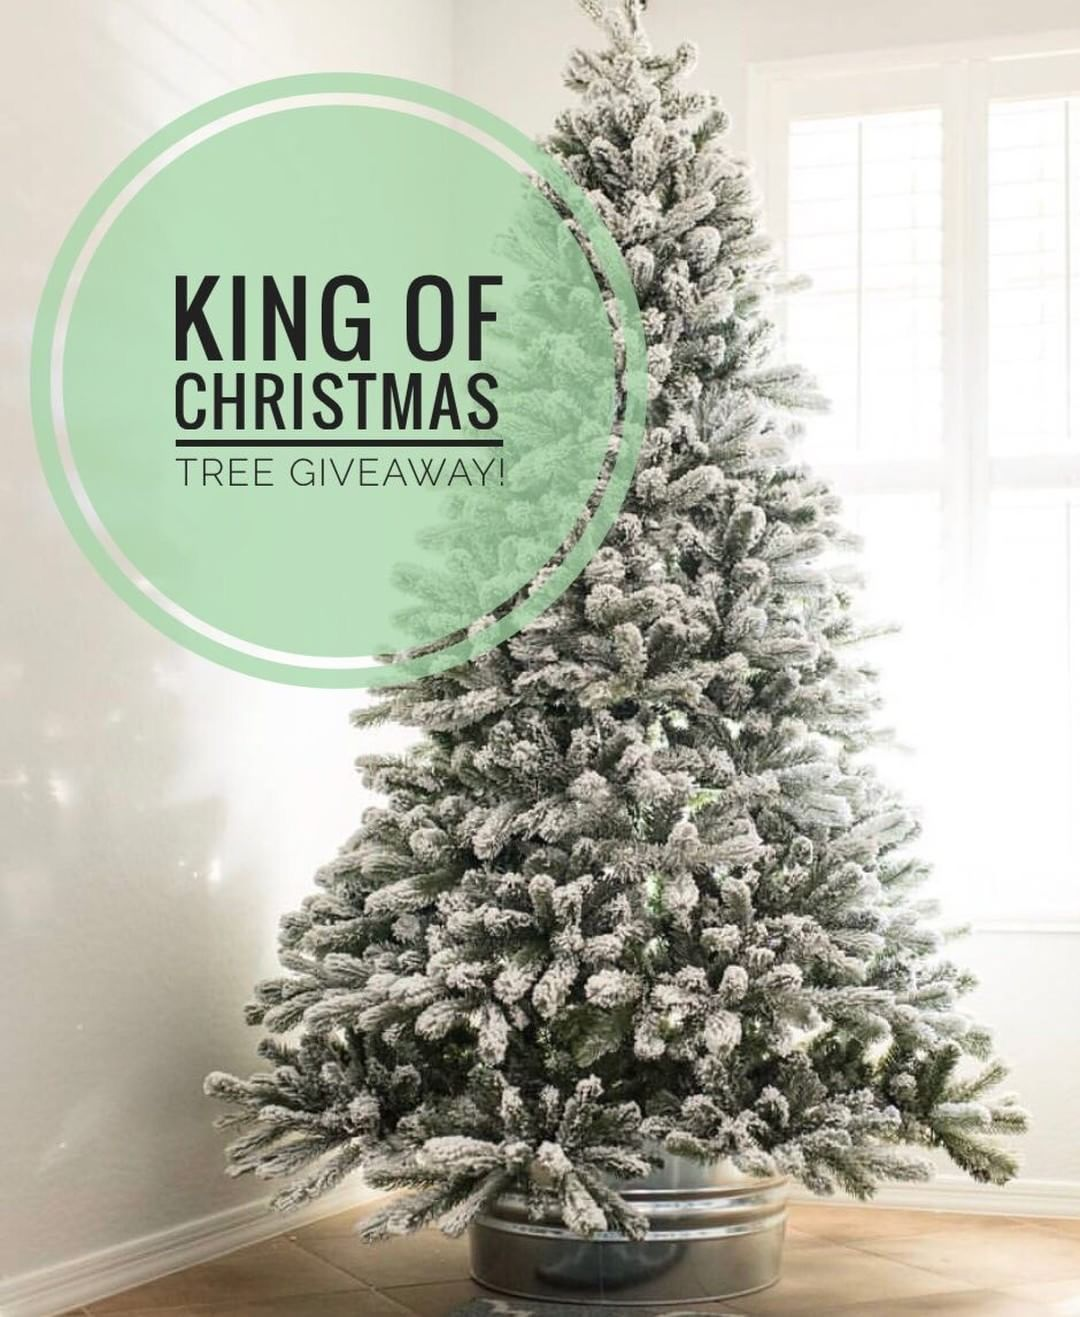 Check out my giveaway @gatheredgrace to win a king of Christmas tree ...